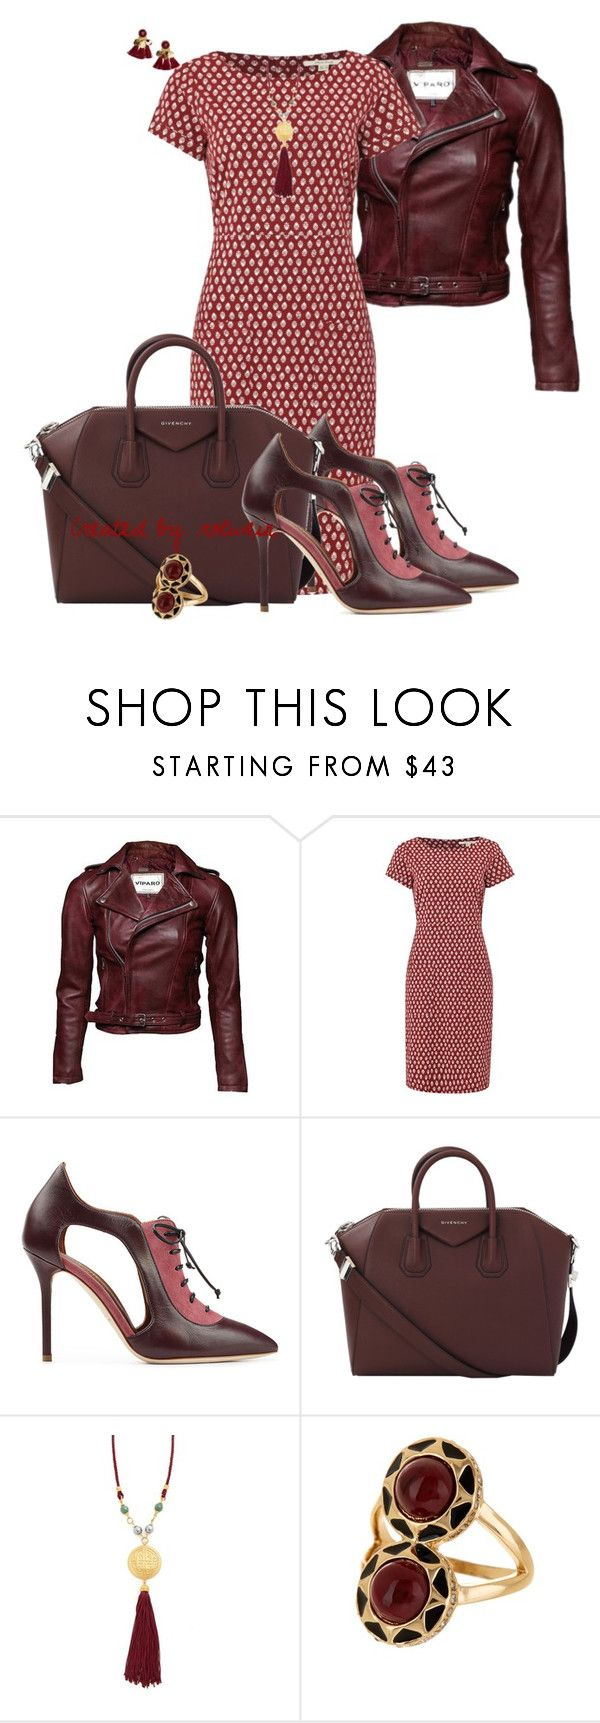 """Aria"" by rotwein ❤ liked on Polyvore featuring White Stuff, Malone Souliers, Givenchy, Ben-Amun and House of Harlow 1960"